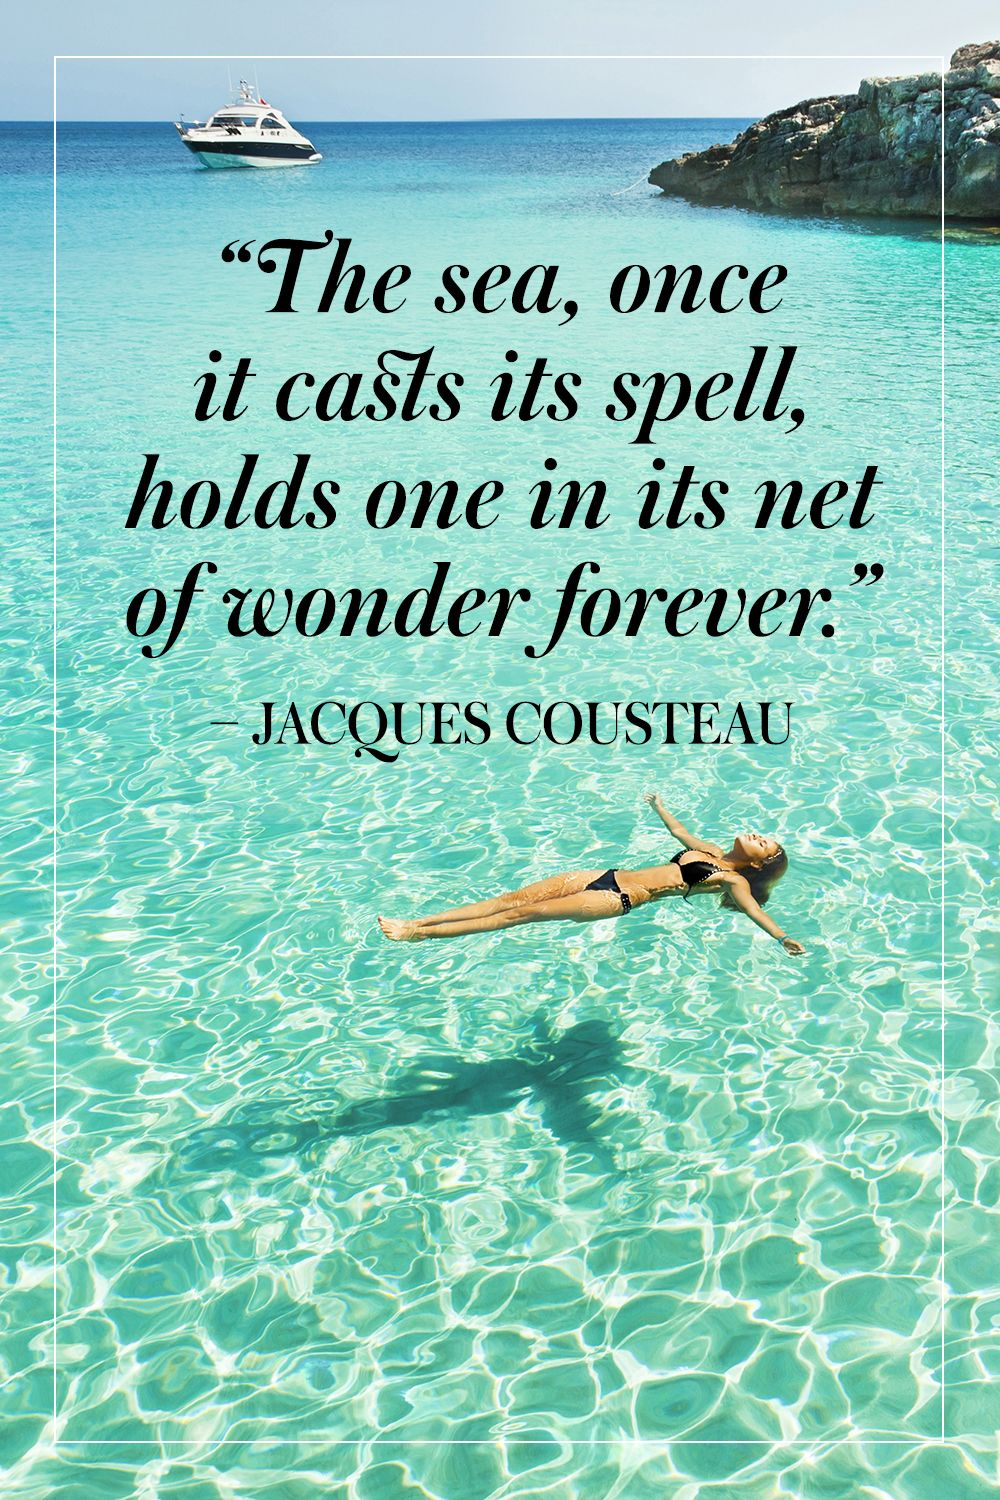 Ocean Quotes 10 Ocean Quotes   Best Quotations About the Beach Ocean Quotes